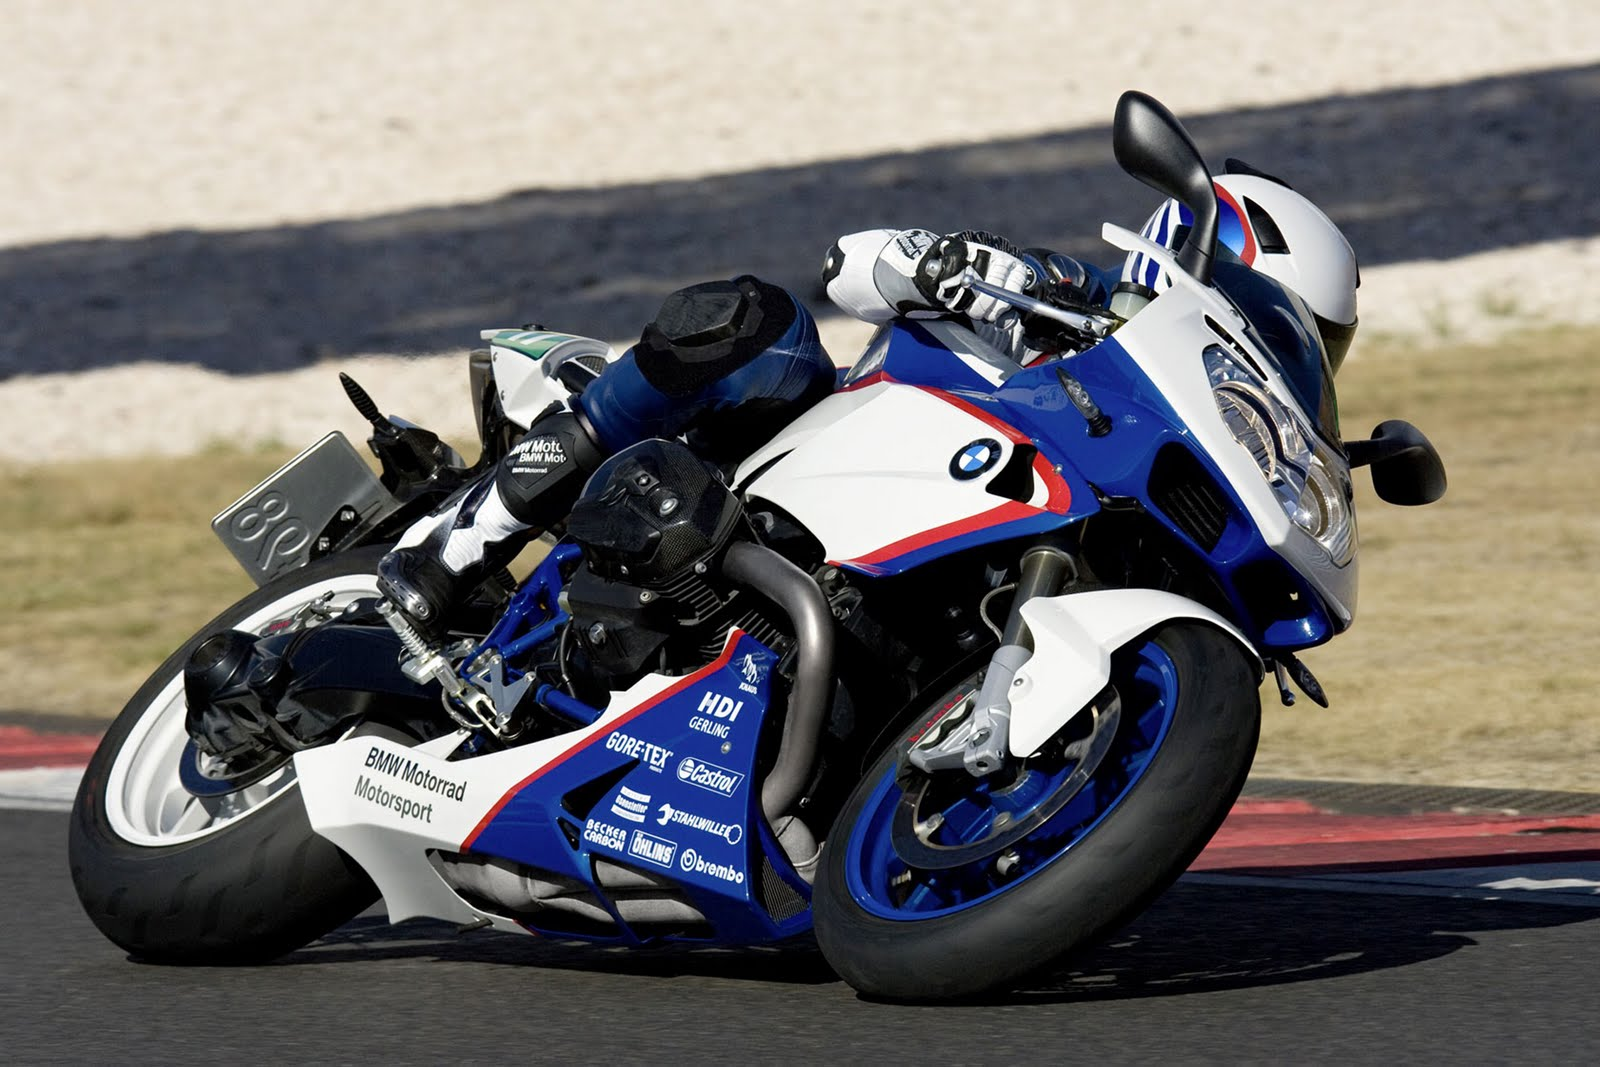 new bmw hp2 sport, read more